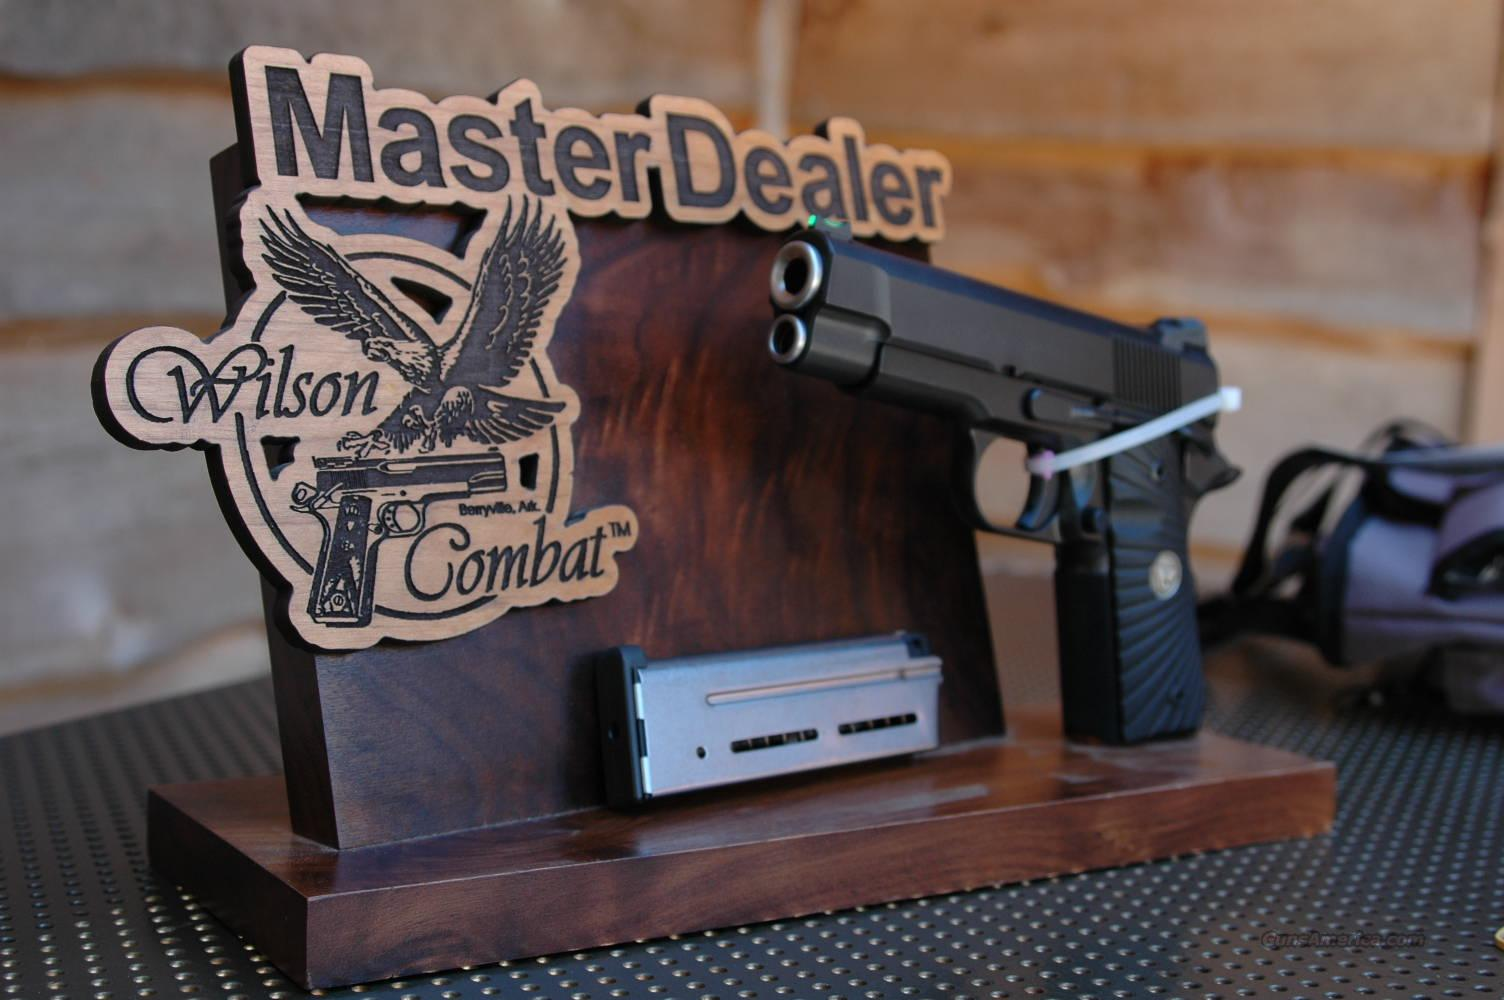 WILSON COMBAT ULTRALIGHT CARRY COMPACT 9mm  Guns > Pistols > Wilson Combat Pistols